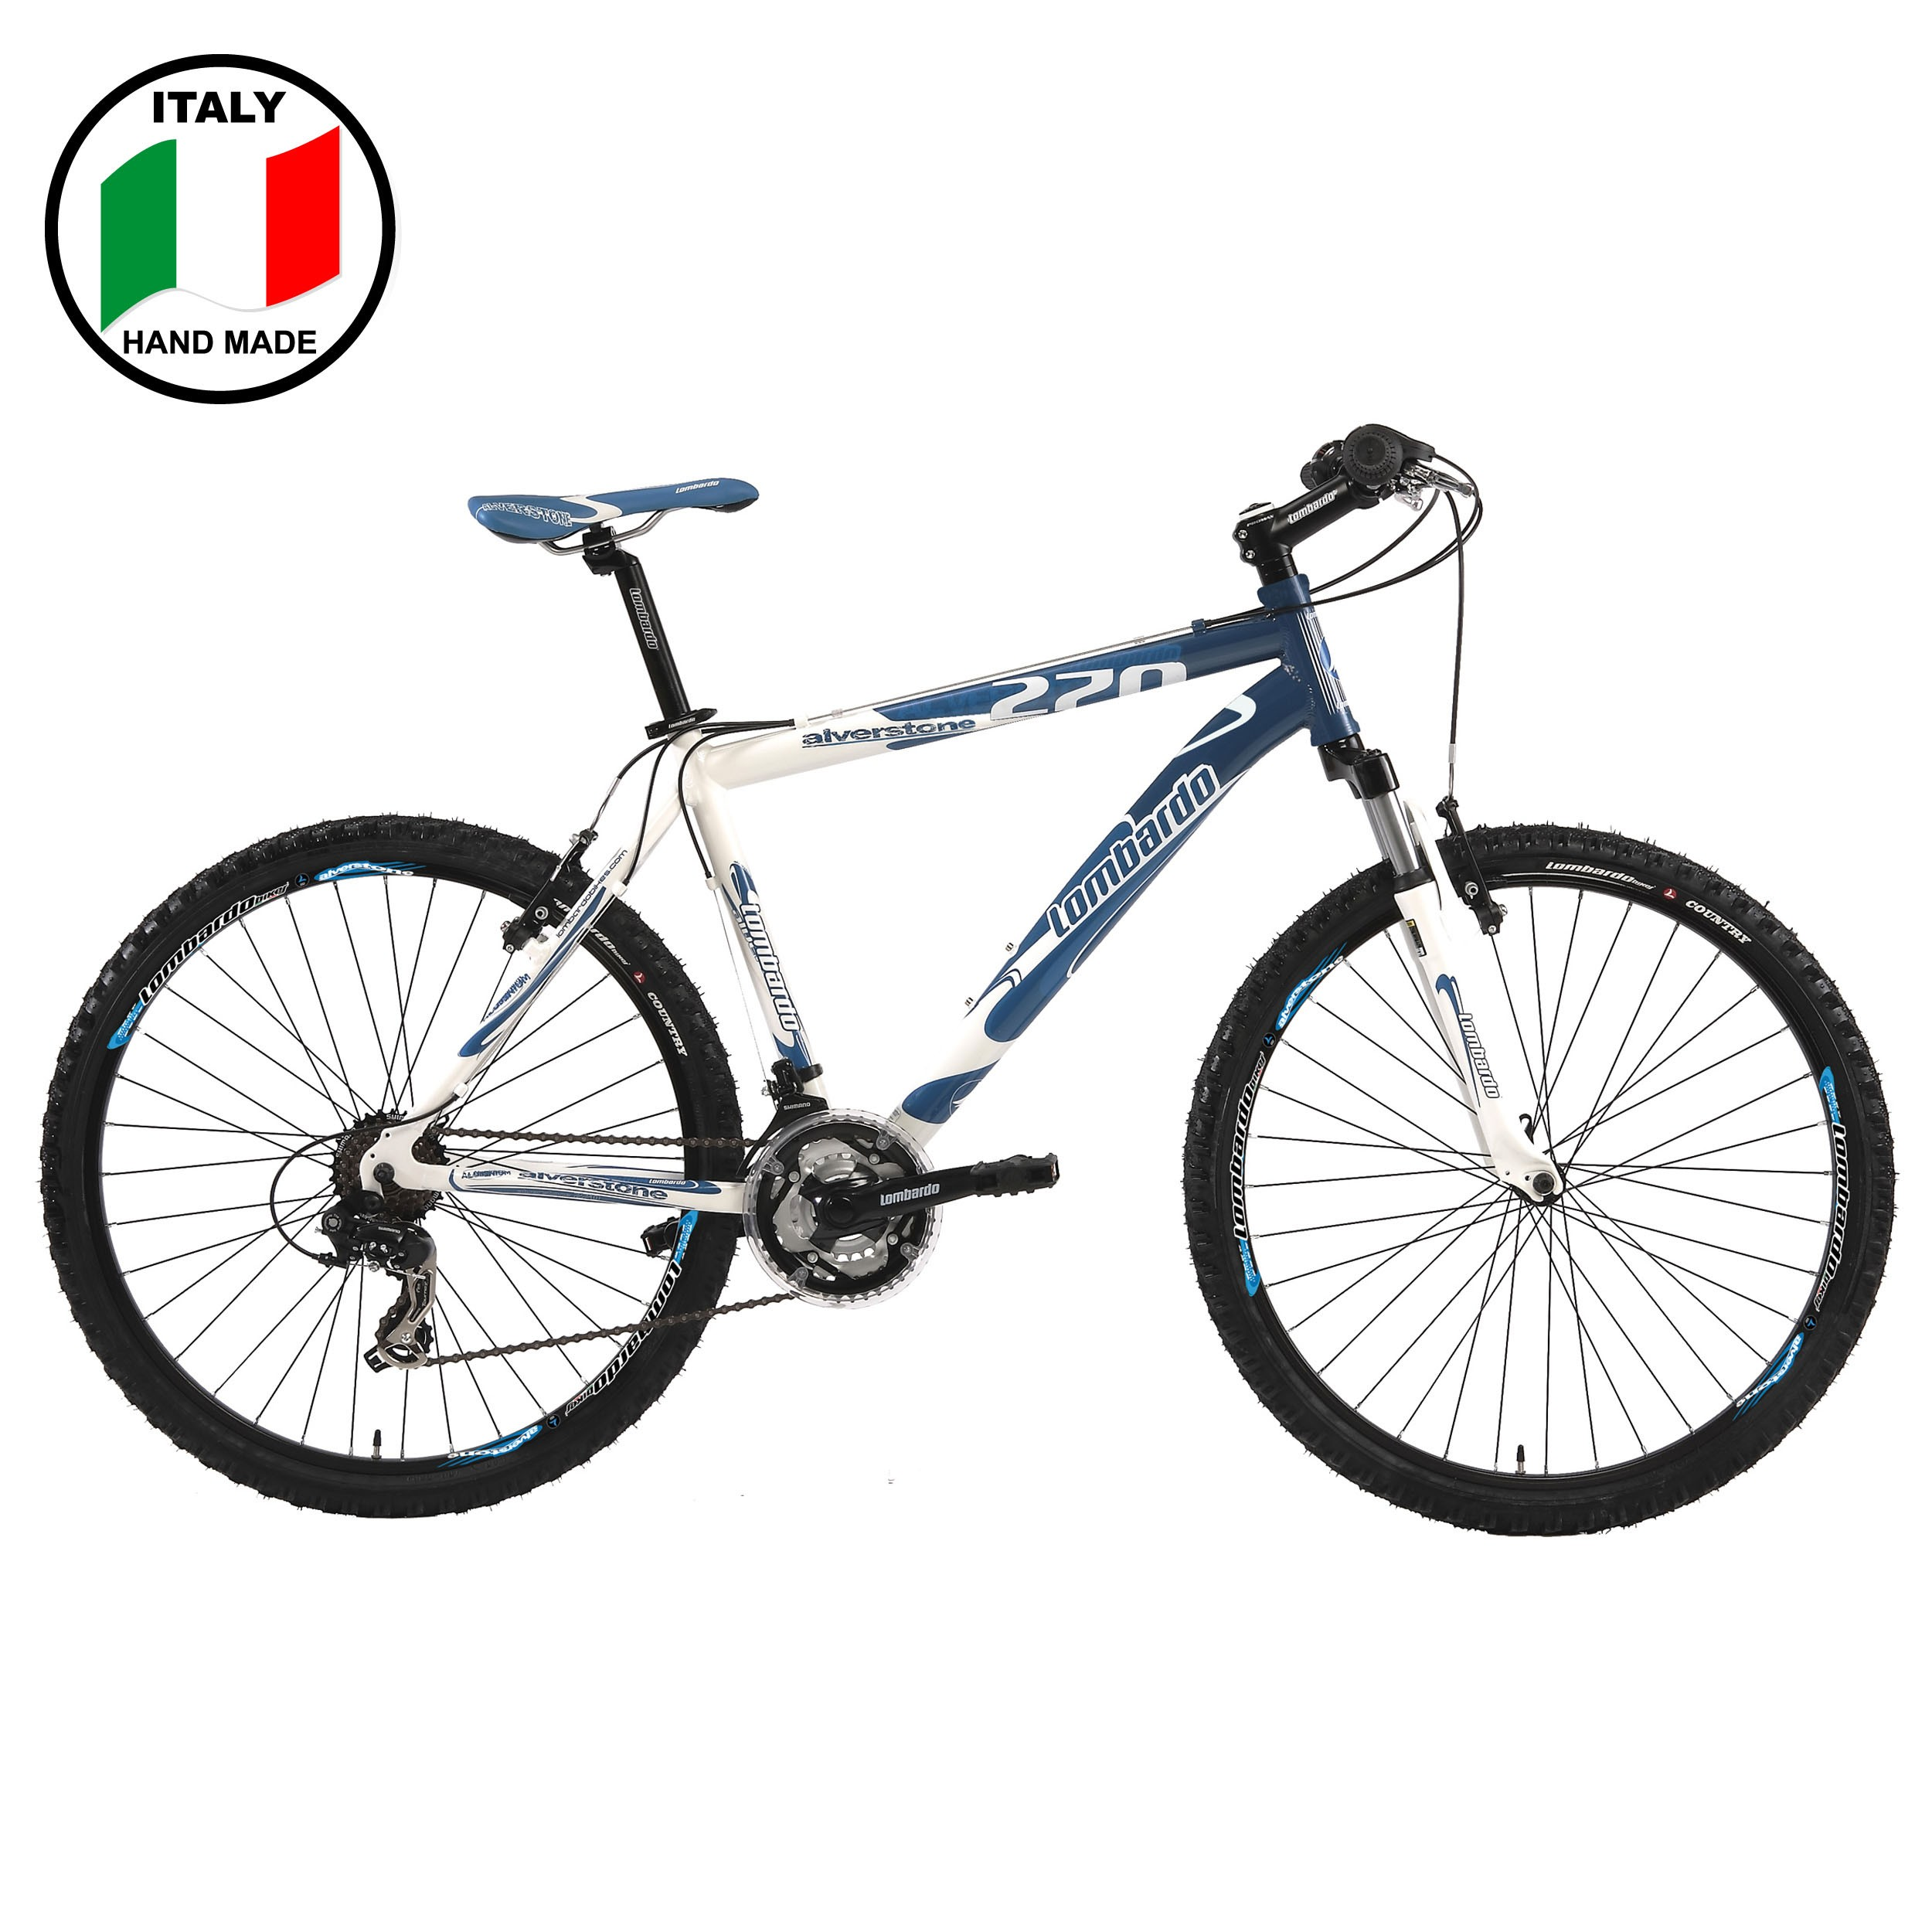 Lombardo Alverstone 350 26 inch Bike- Blue and White